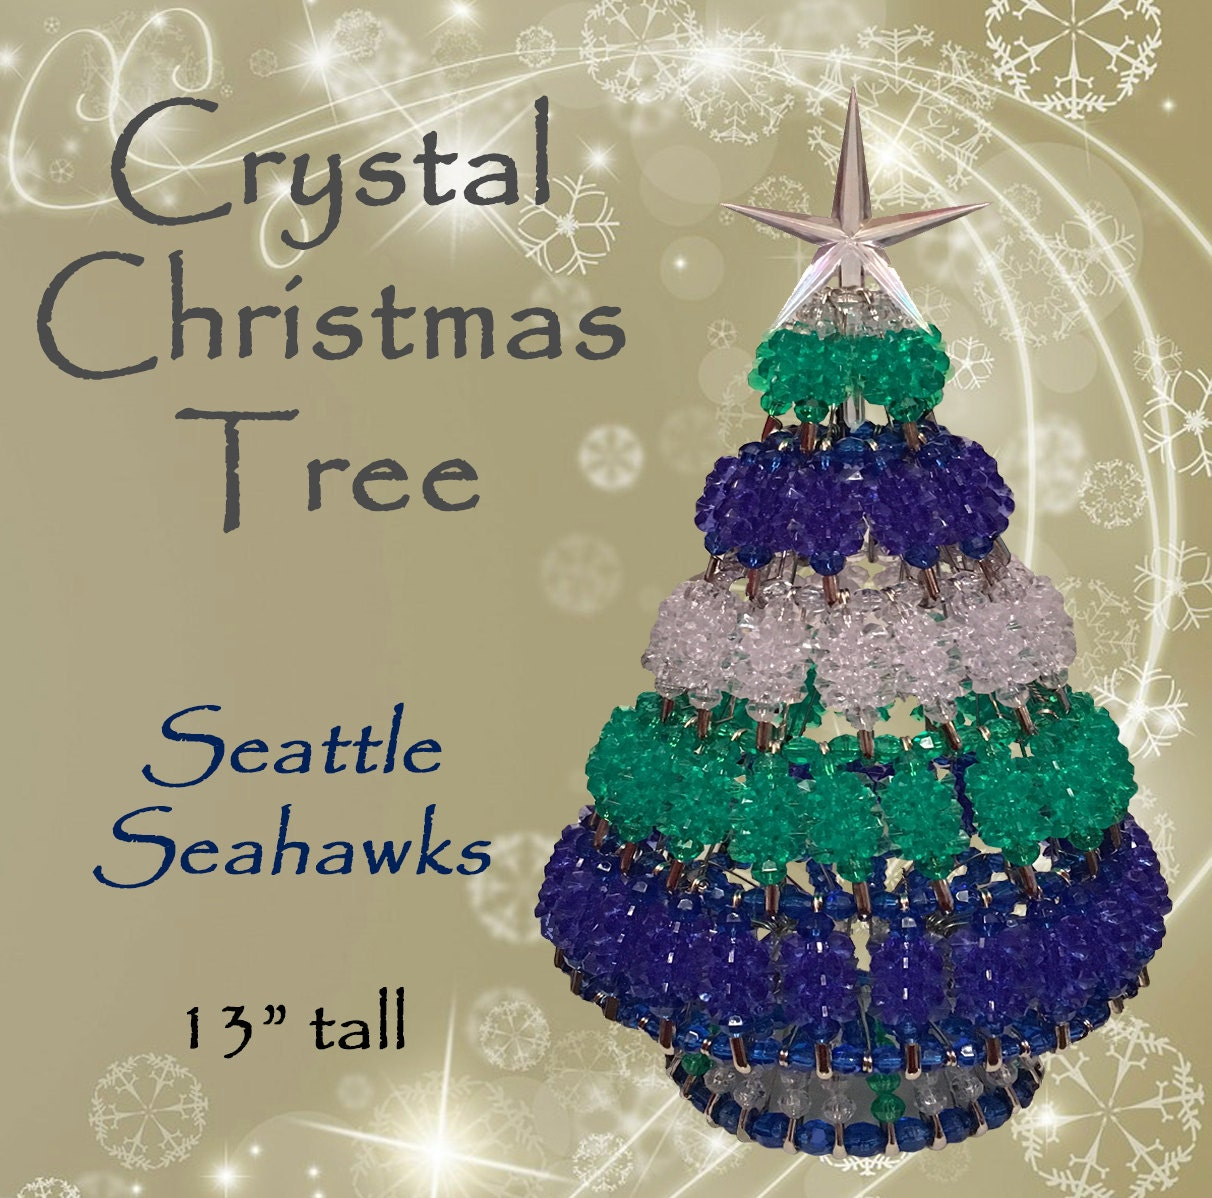 Seattle Christmas Tree Lighting: Miniature SEATTLE SEAHAWKS Crystal Christmas Tree